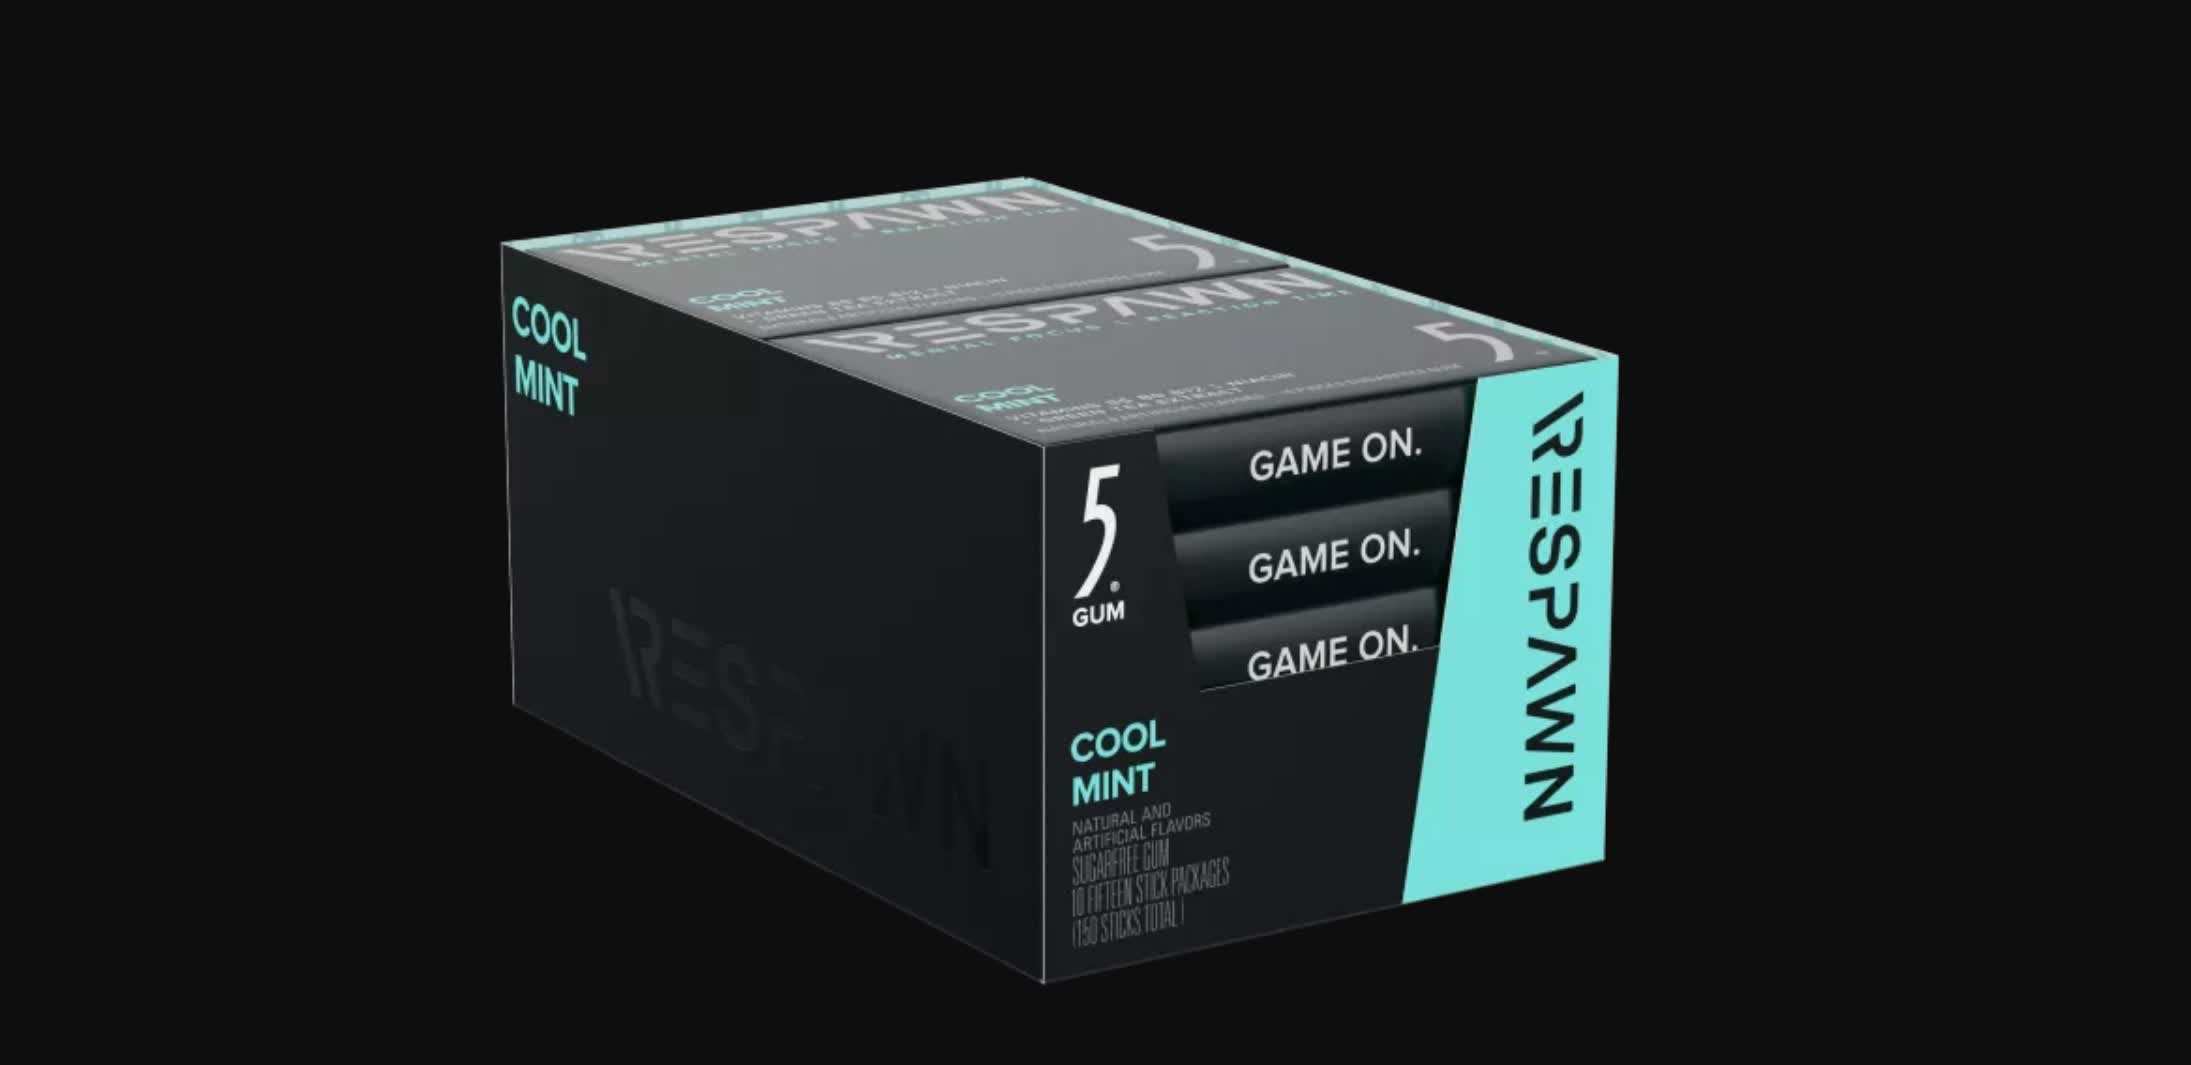 Razer unveils Respawn gum that improves your gaming skills, supposedly